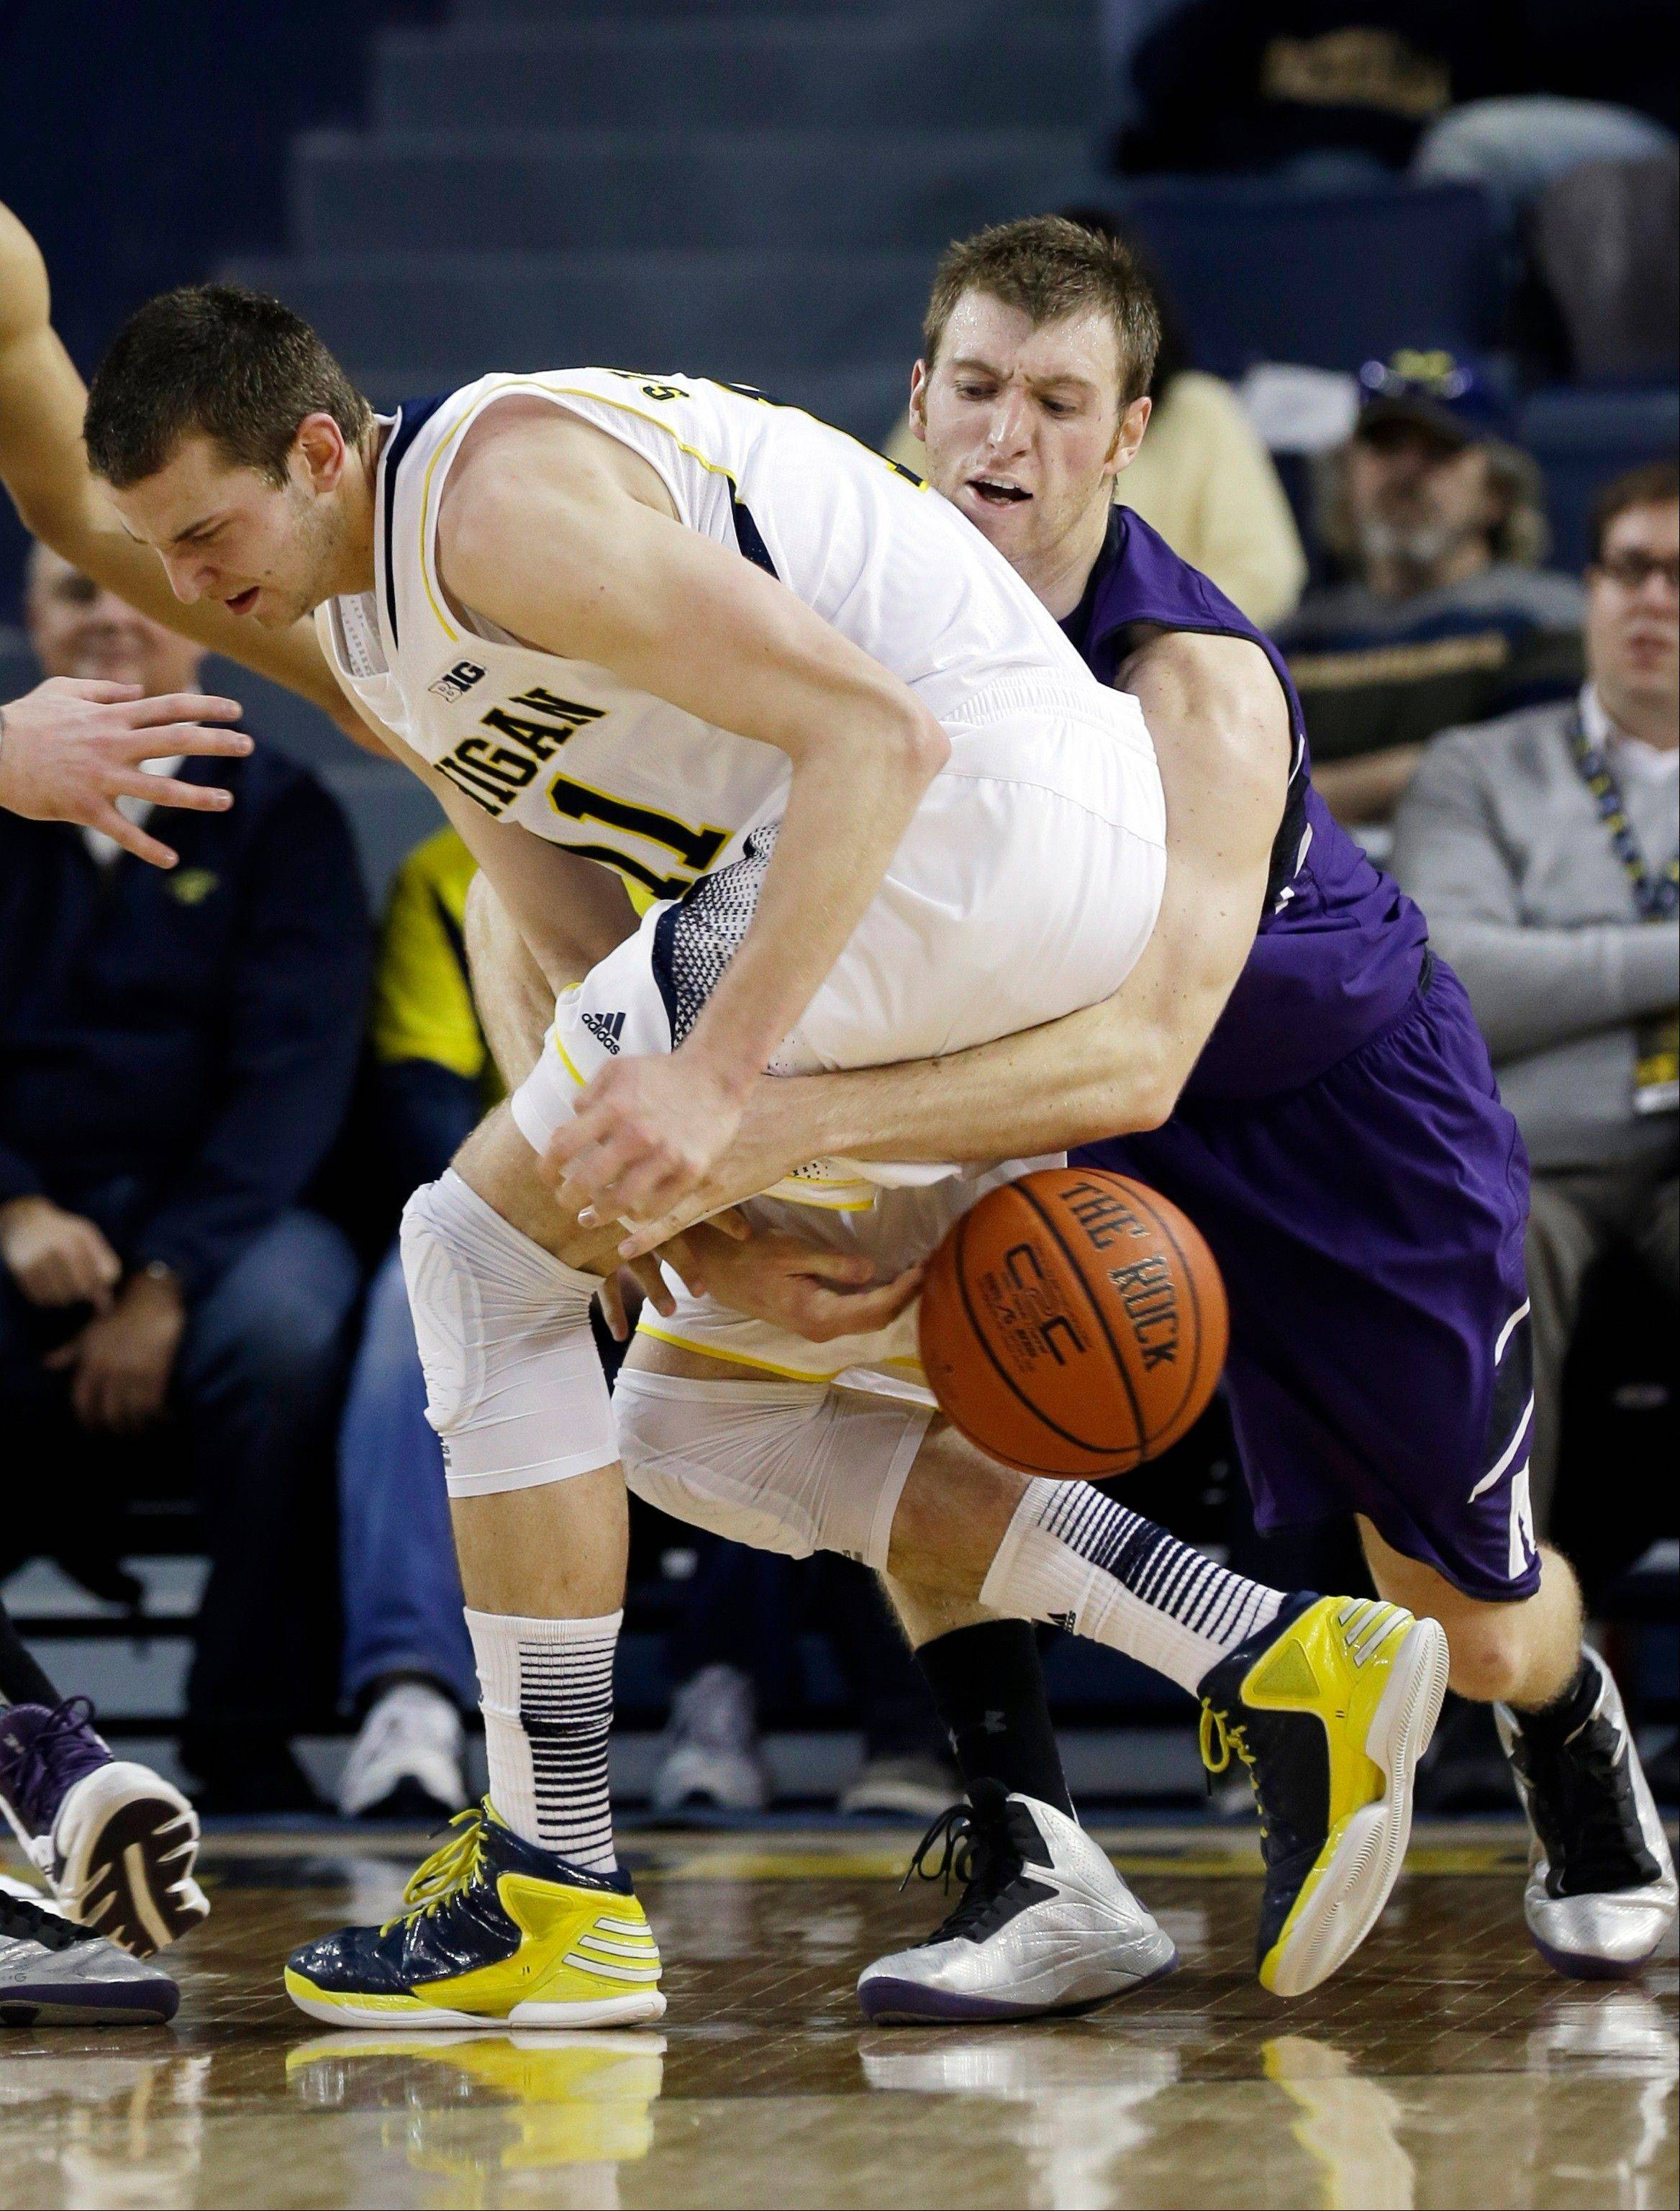 Northwestern guard Alex Marcotullio, right, reaches in on Michigan guard Nik Stauskas (11) during the Wolverines� win Wednesday night in Ann Arbor.